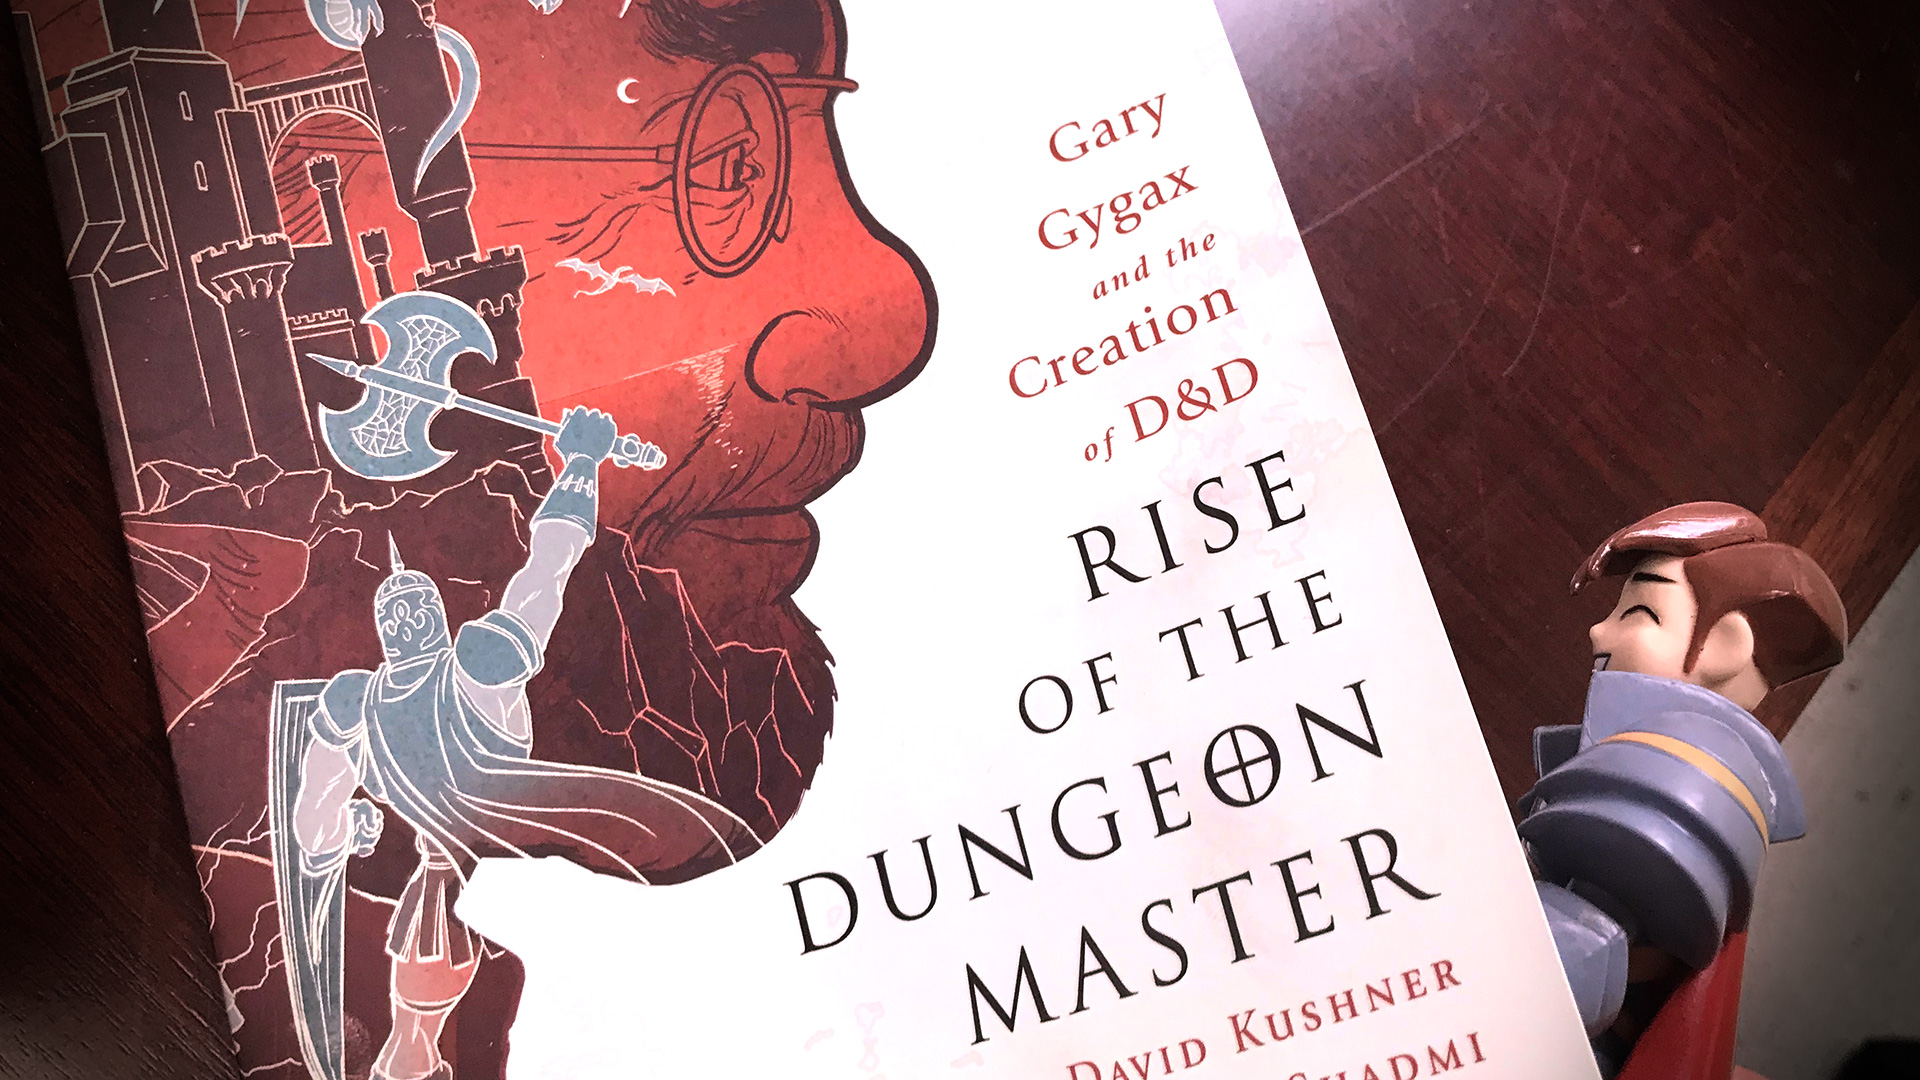 Gary Gynax Rise of the Dungeon Master